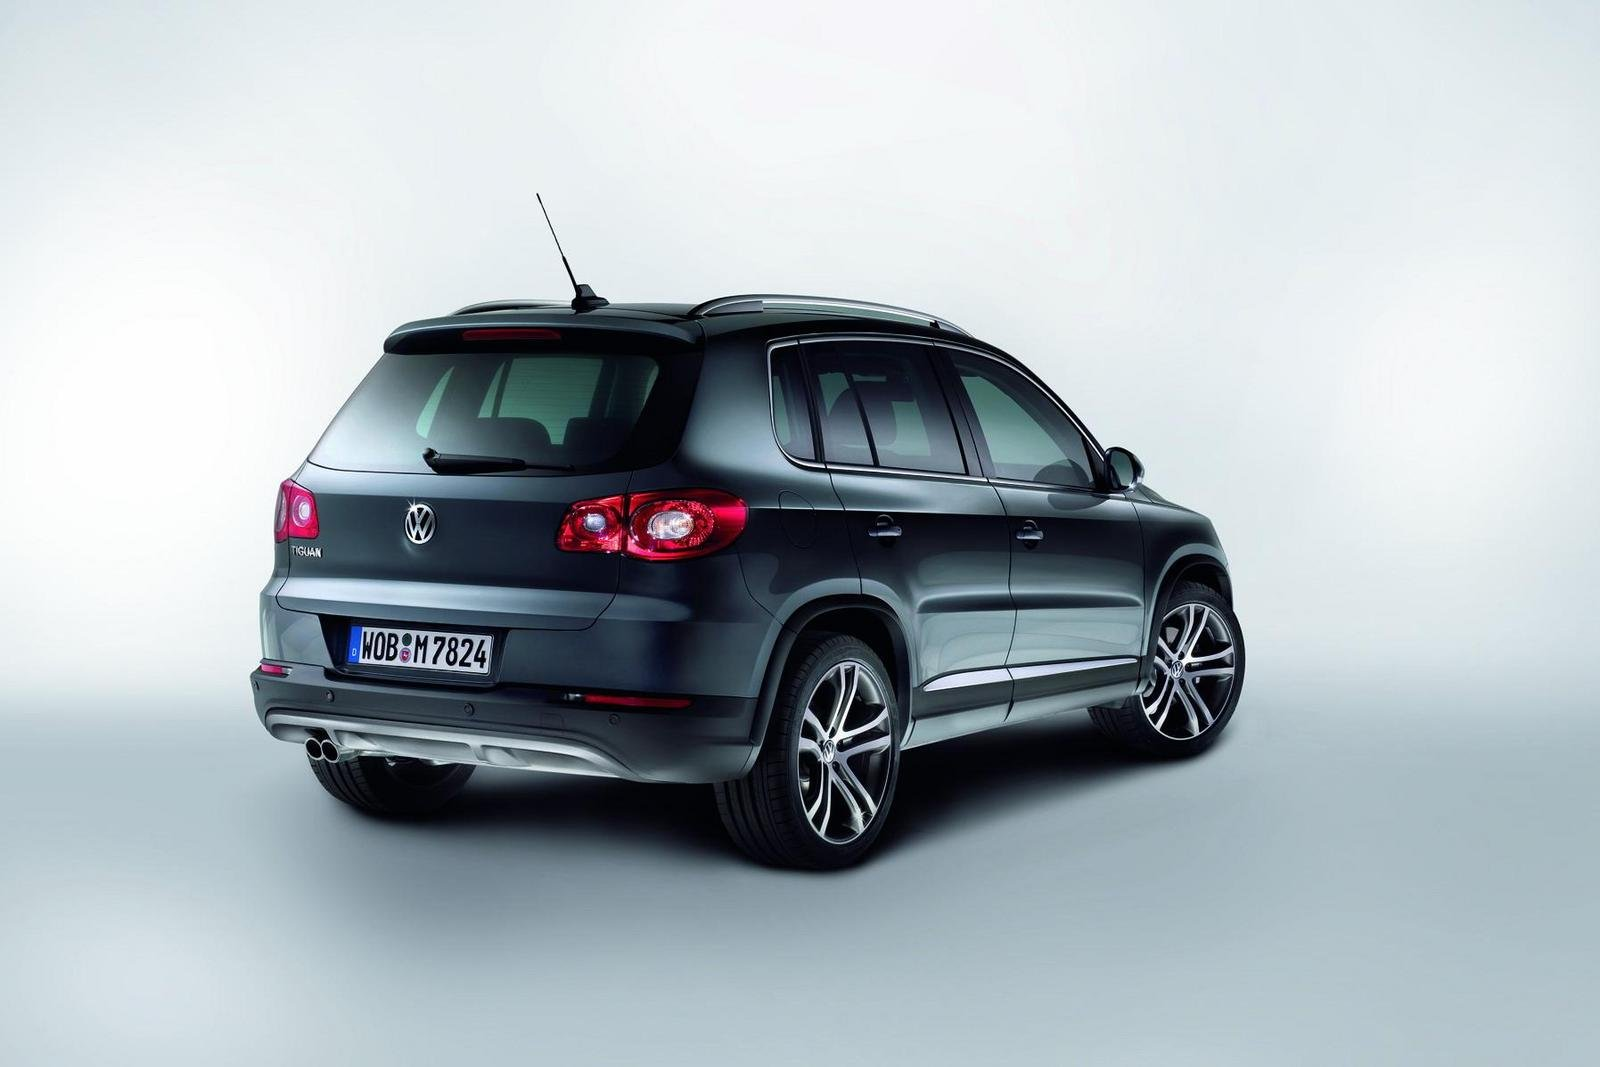 2010 volkswagen tiguan track avenue picture 337640 car review top speed. Black Bedroom Furniture Sets. Home Design Ideas